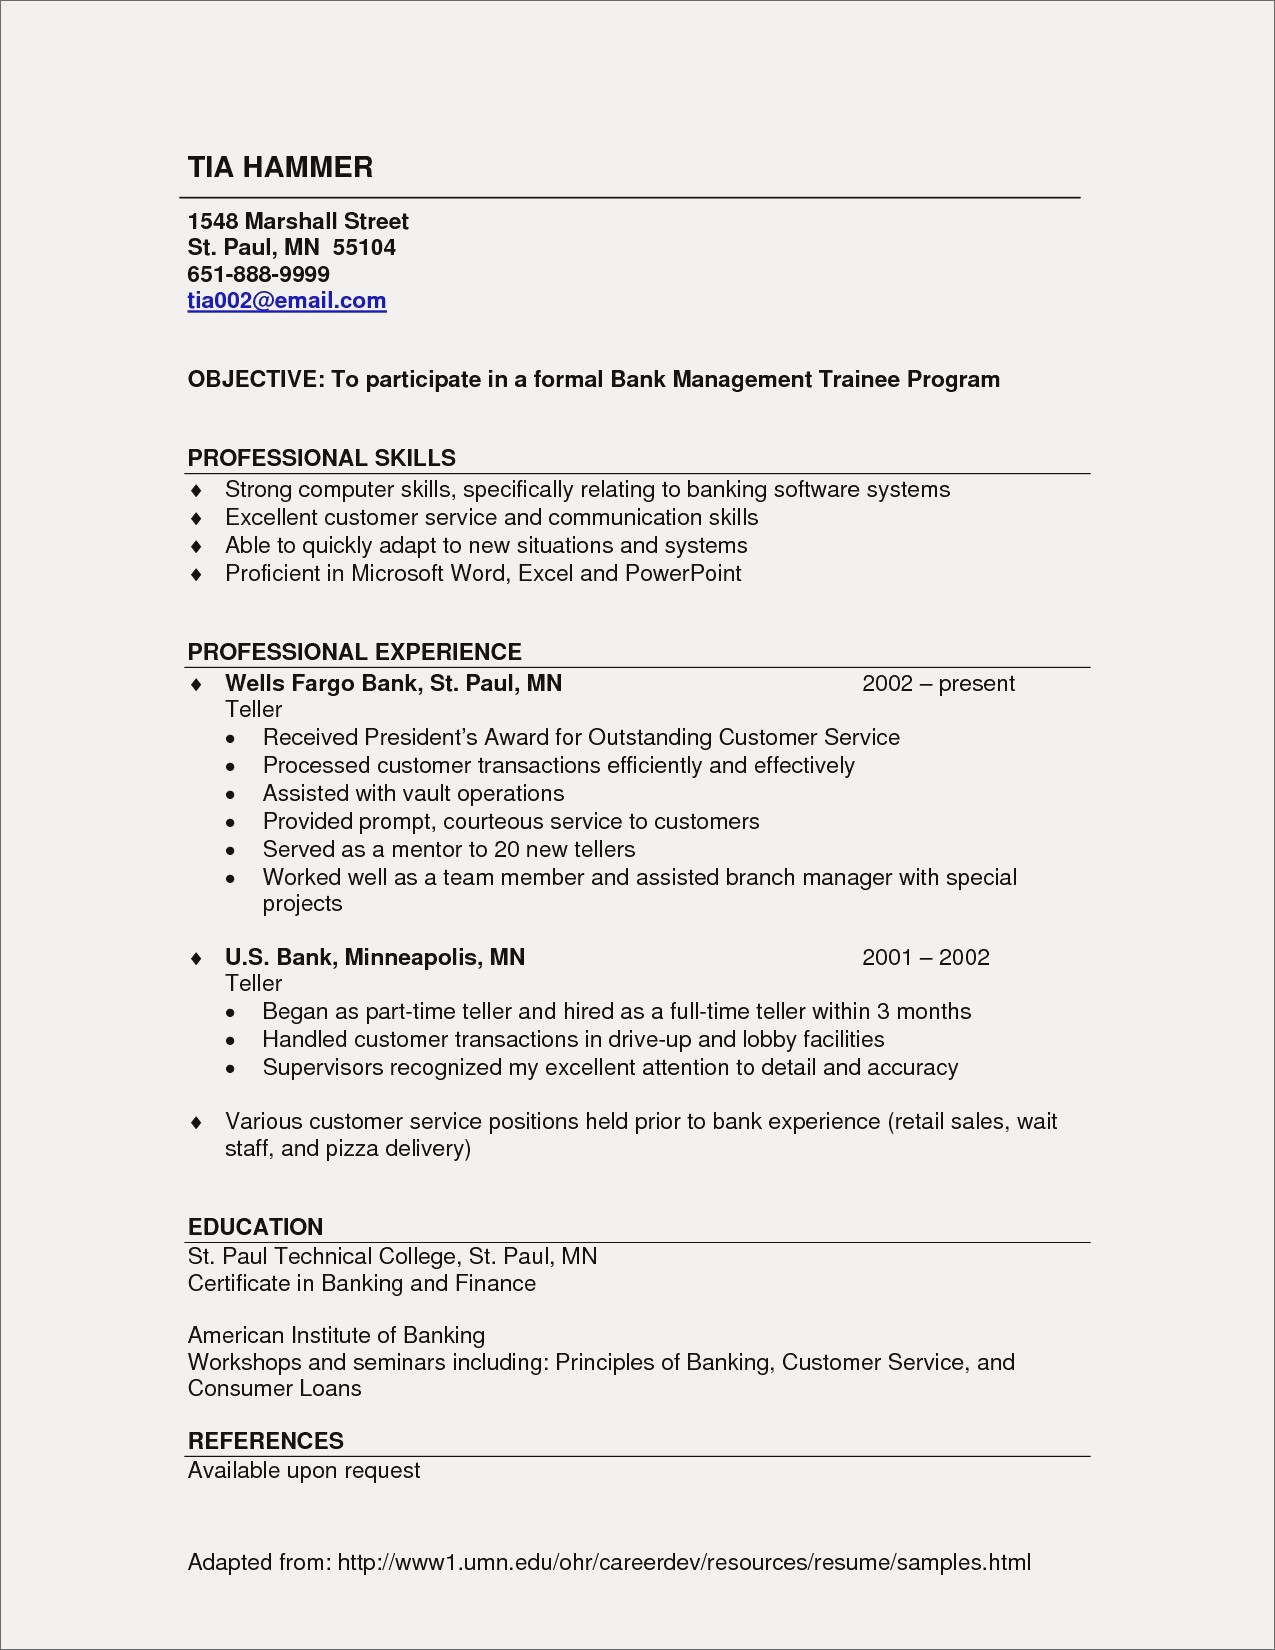 Excel Resume Template - Resume Templates for Customer Service Best Customer Service Resume